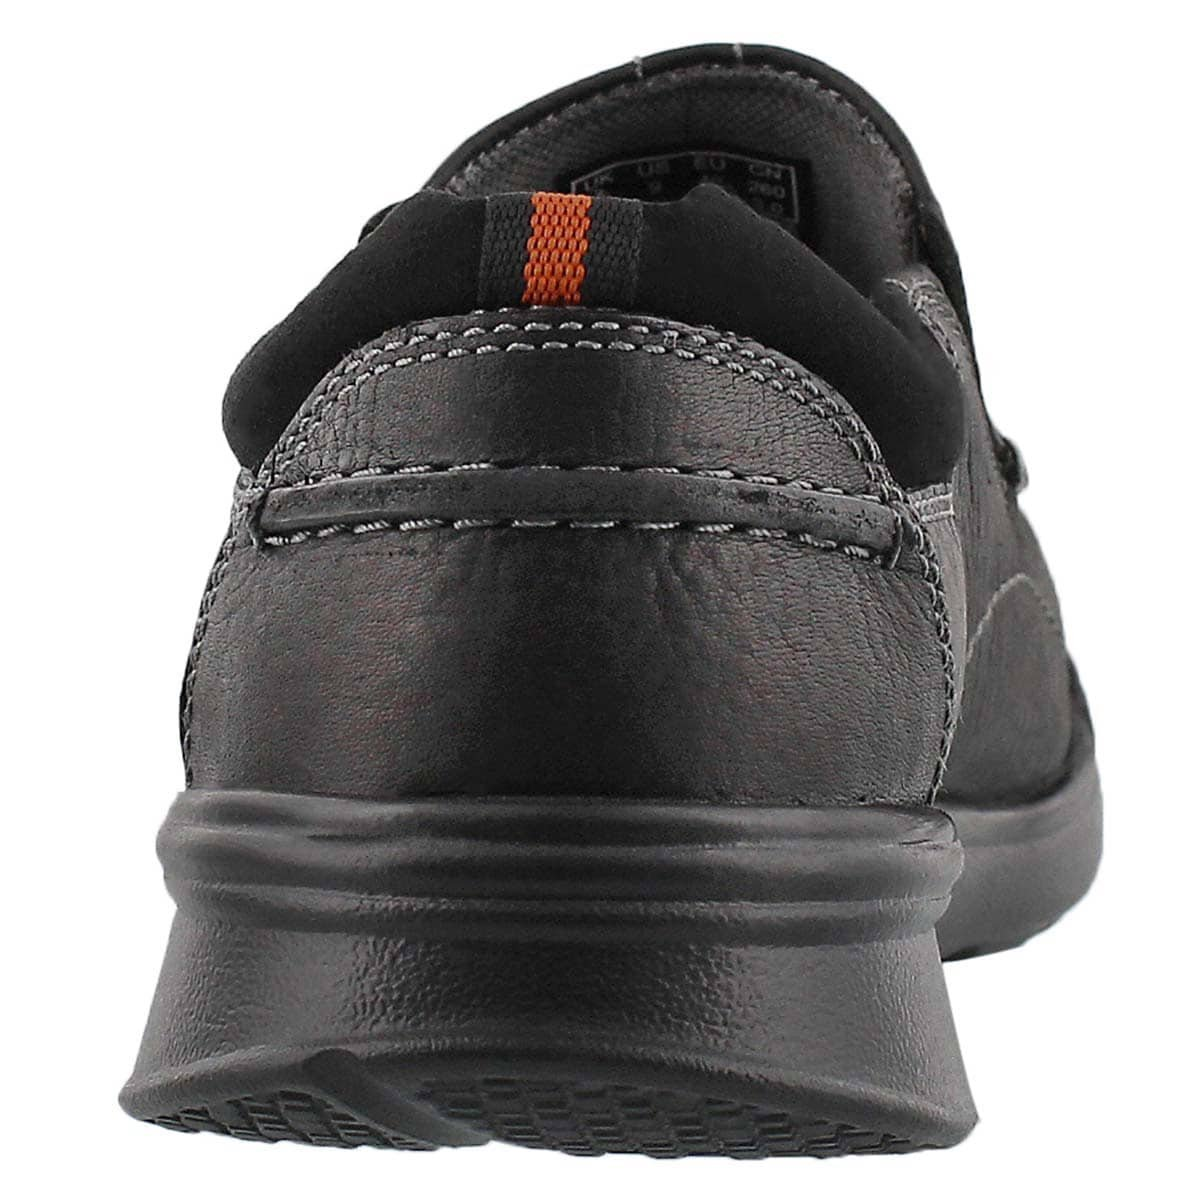 CLARKS Men's Cotrell Step Slip On Casual Loafer - Medium Black 10 W US by CLARKS (Image #3)